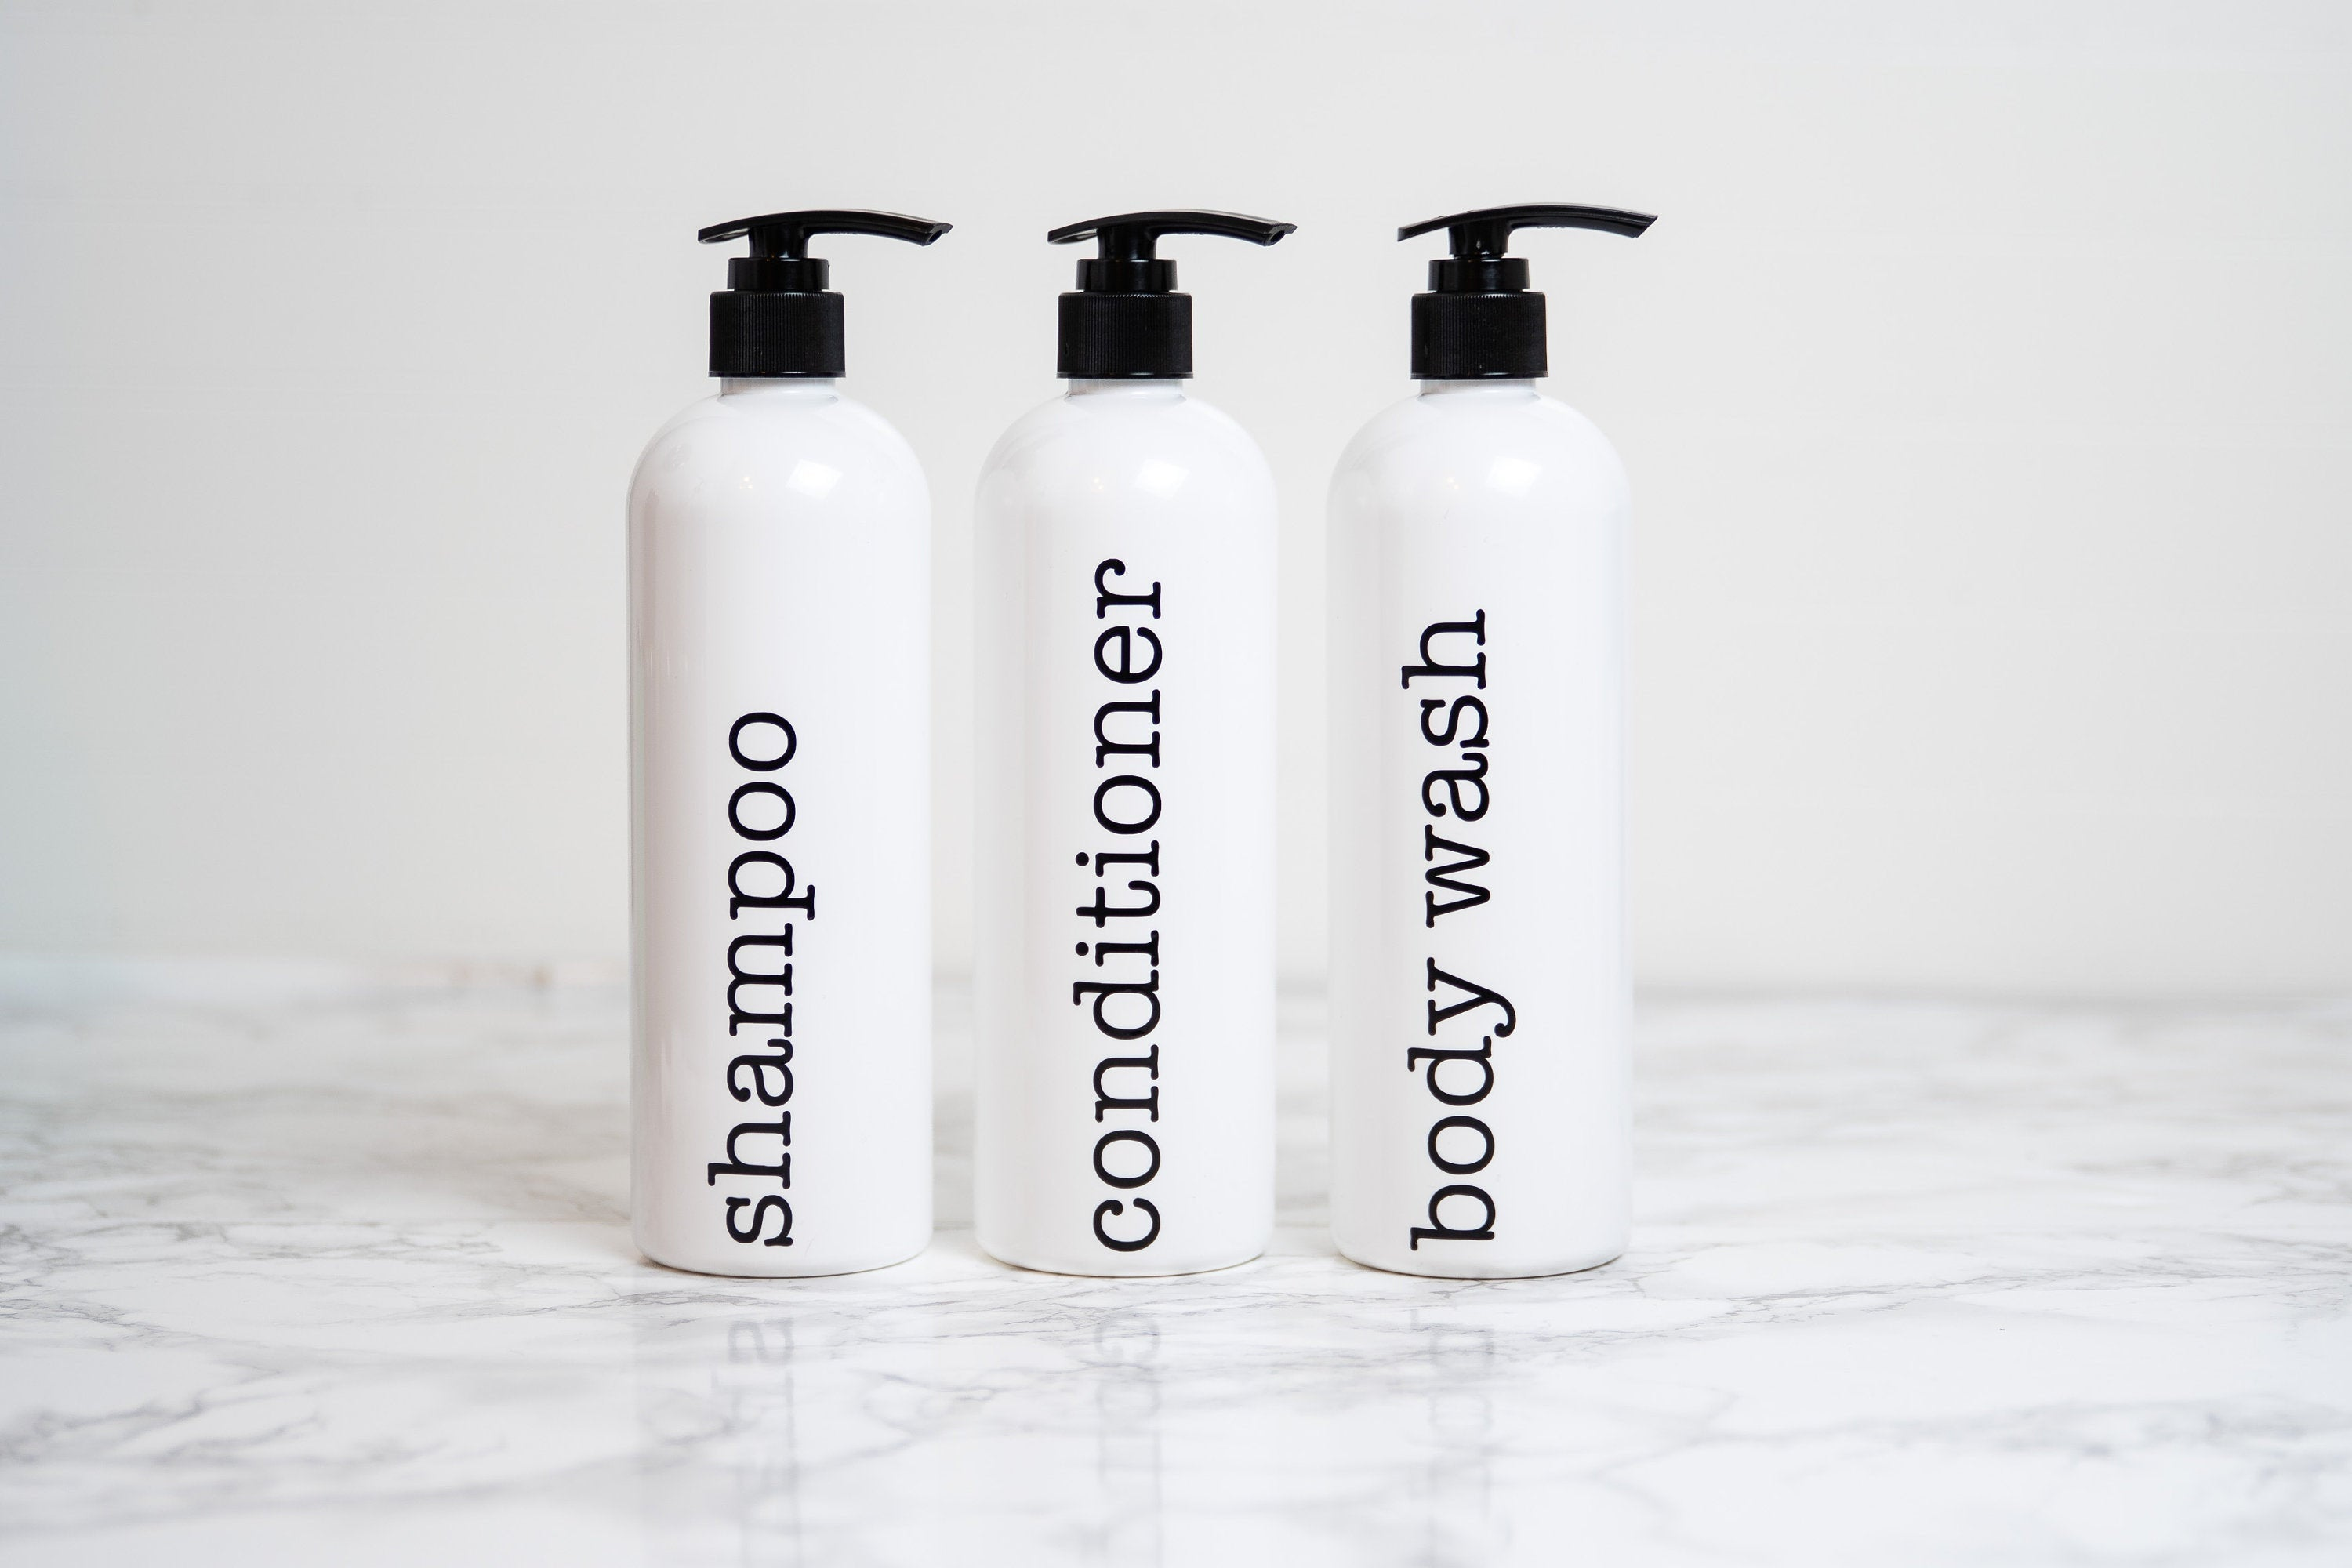 Farmhouse Bathroom Shower Decor, Shampoo and Conditioner Containers, Personalized Shampoo Bottle, Body Wash Dispenser Plastic